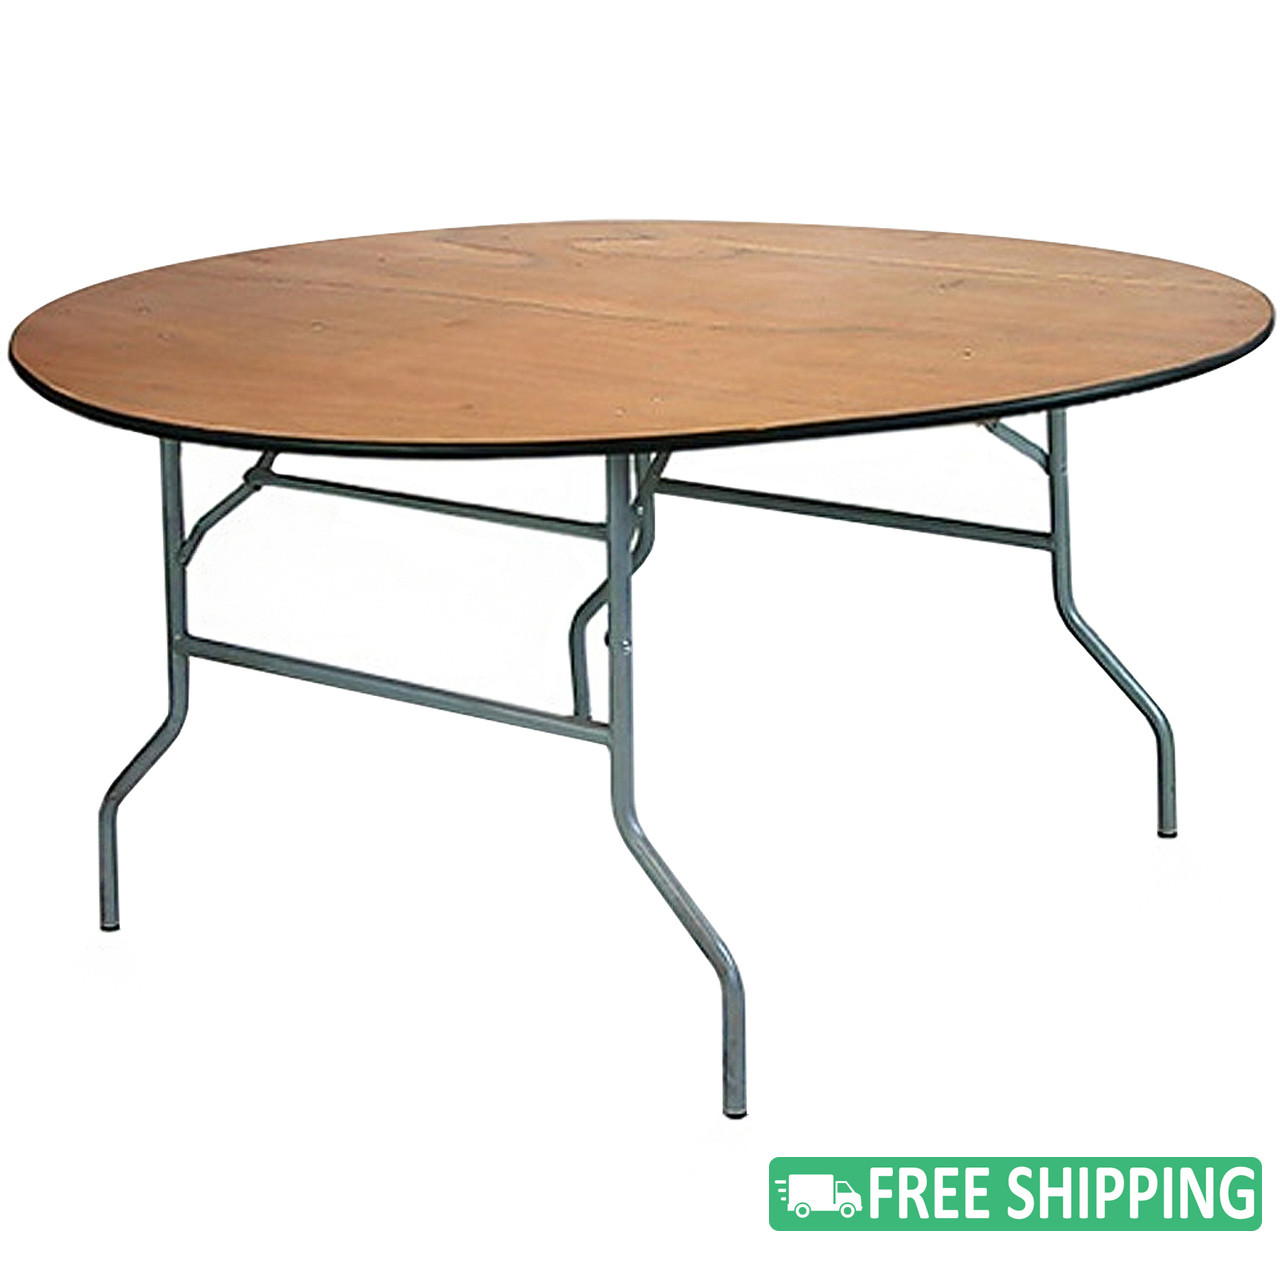 5 pack 60 inch 5 ft round wood folding banquet tables ftpw60r rh classroomessentialsonline com round banquet tables canada round banquet tables that seat 8